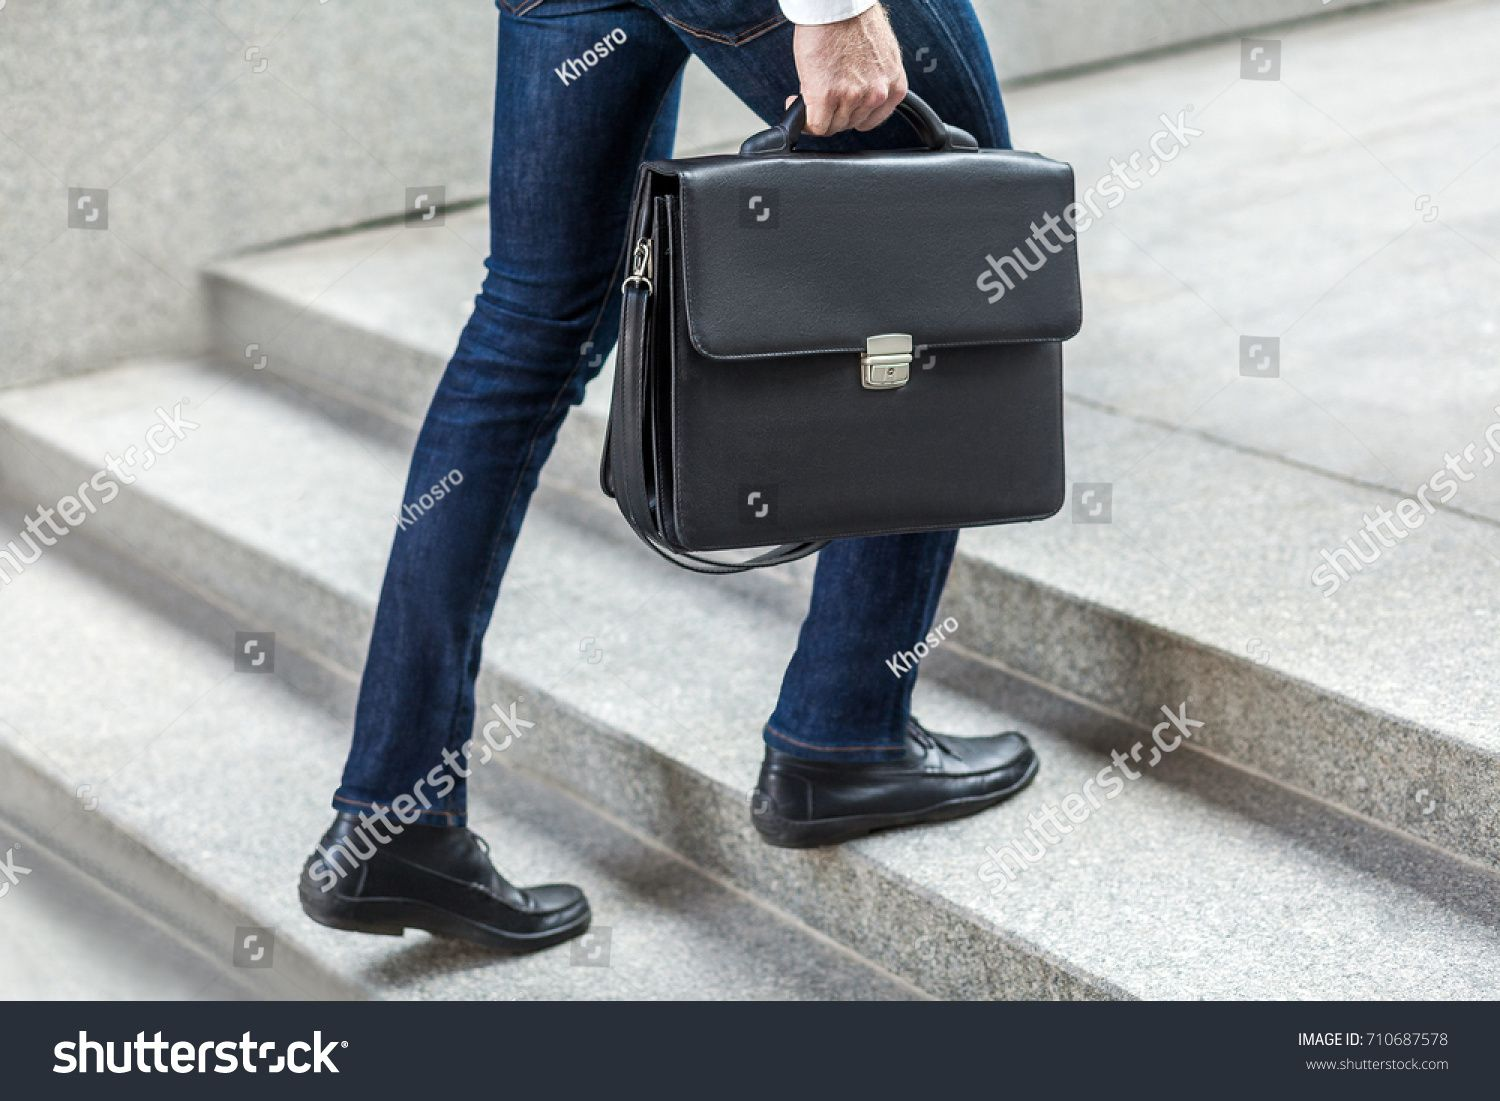 Focus On Bag Businessman With Briefcase In Hand Walking Up On Stairs Outdoorbusinessman Briefcase Focus Bag Briefcase Bags Leather Backpack